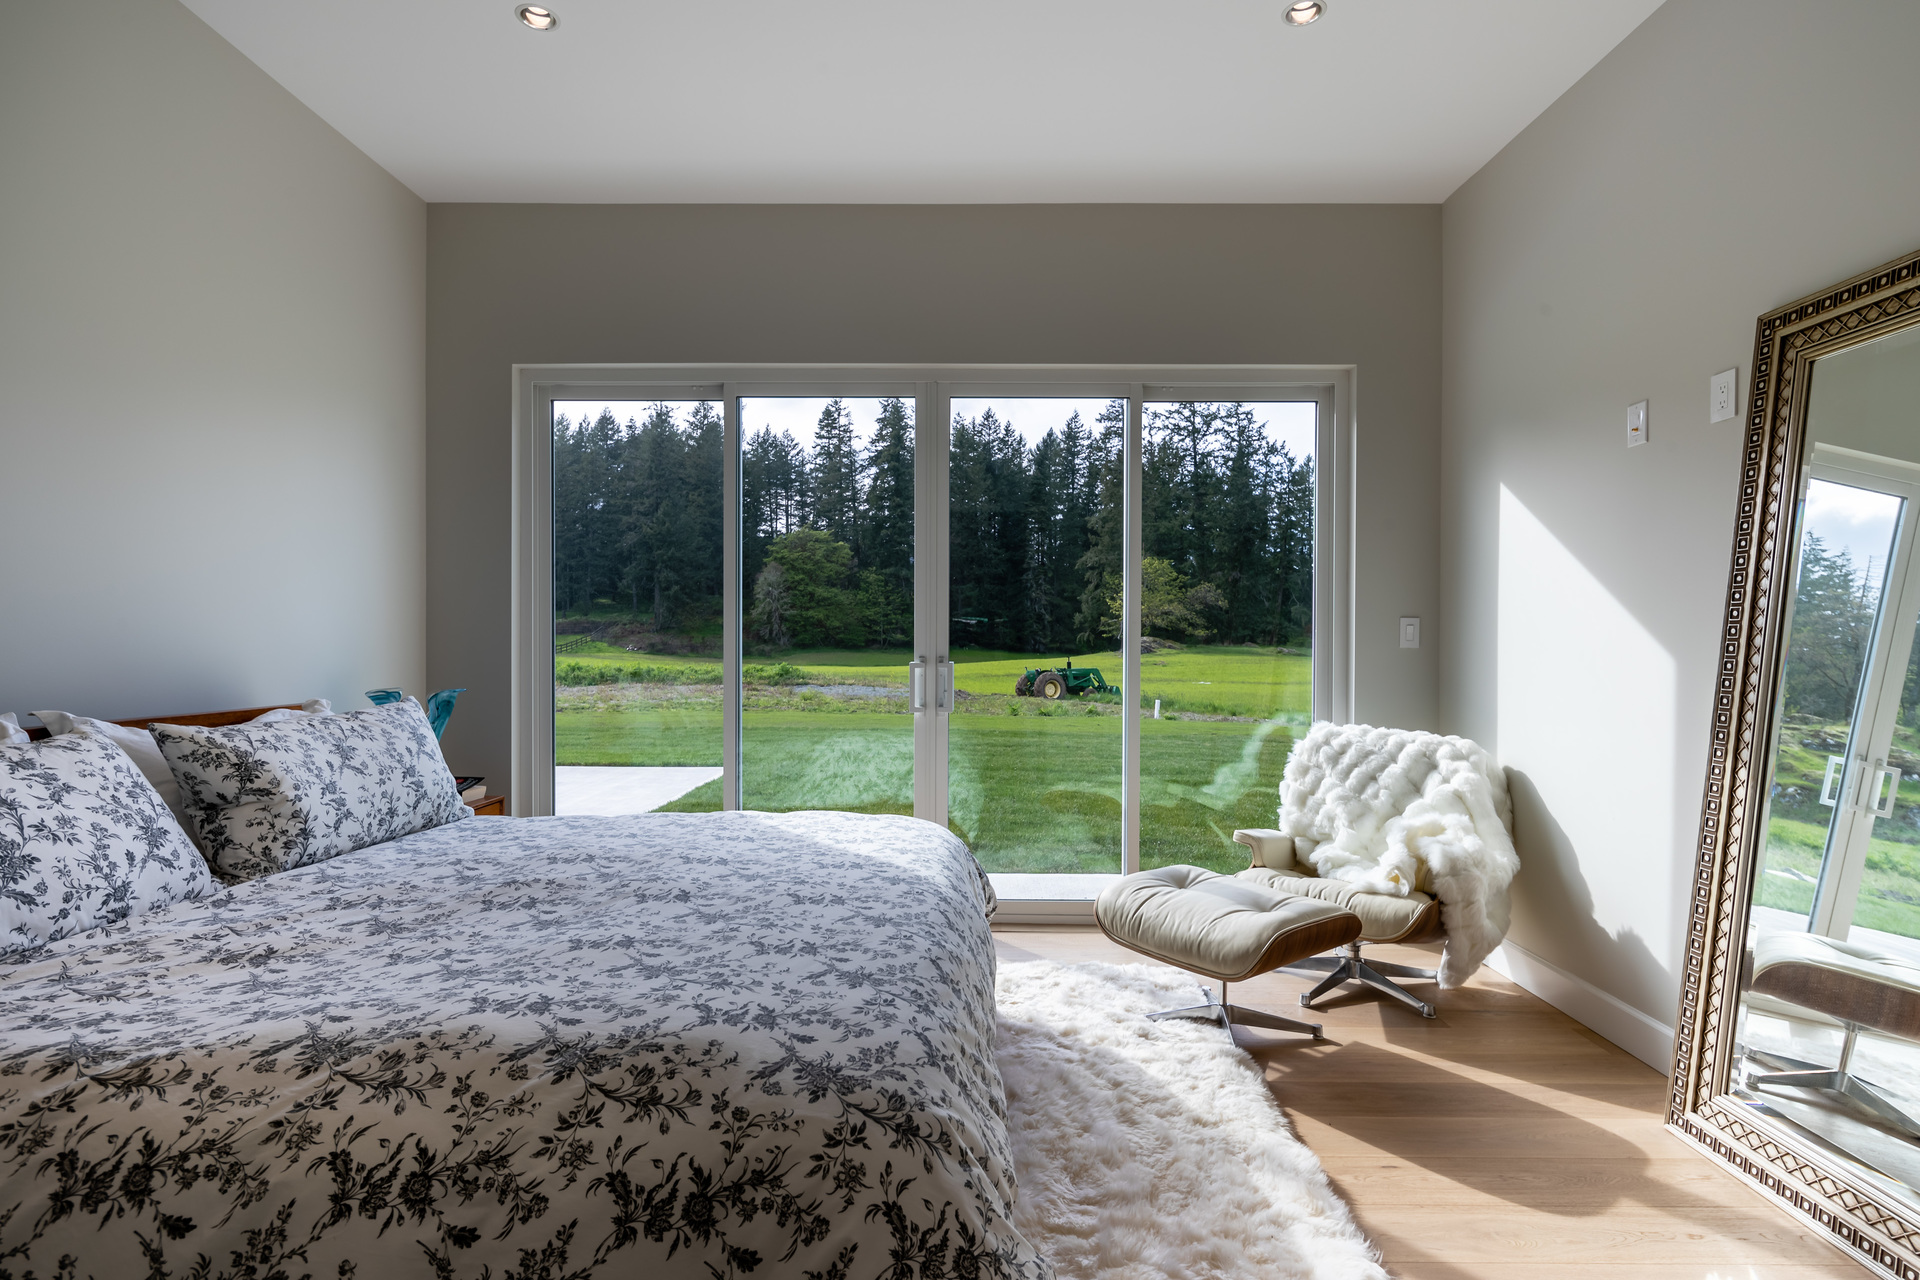 Guest Bedroom With Walkout Patio at 5100 & 5101 Jagtar's Way, Prospect Lake, Saanich West